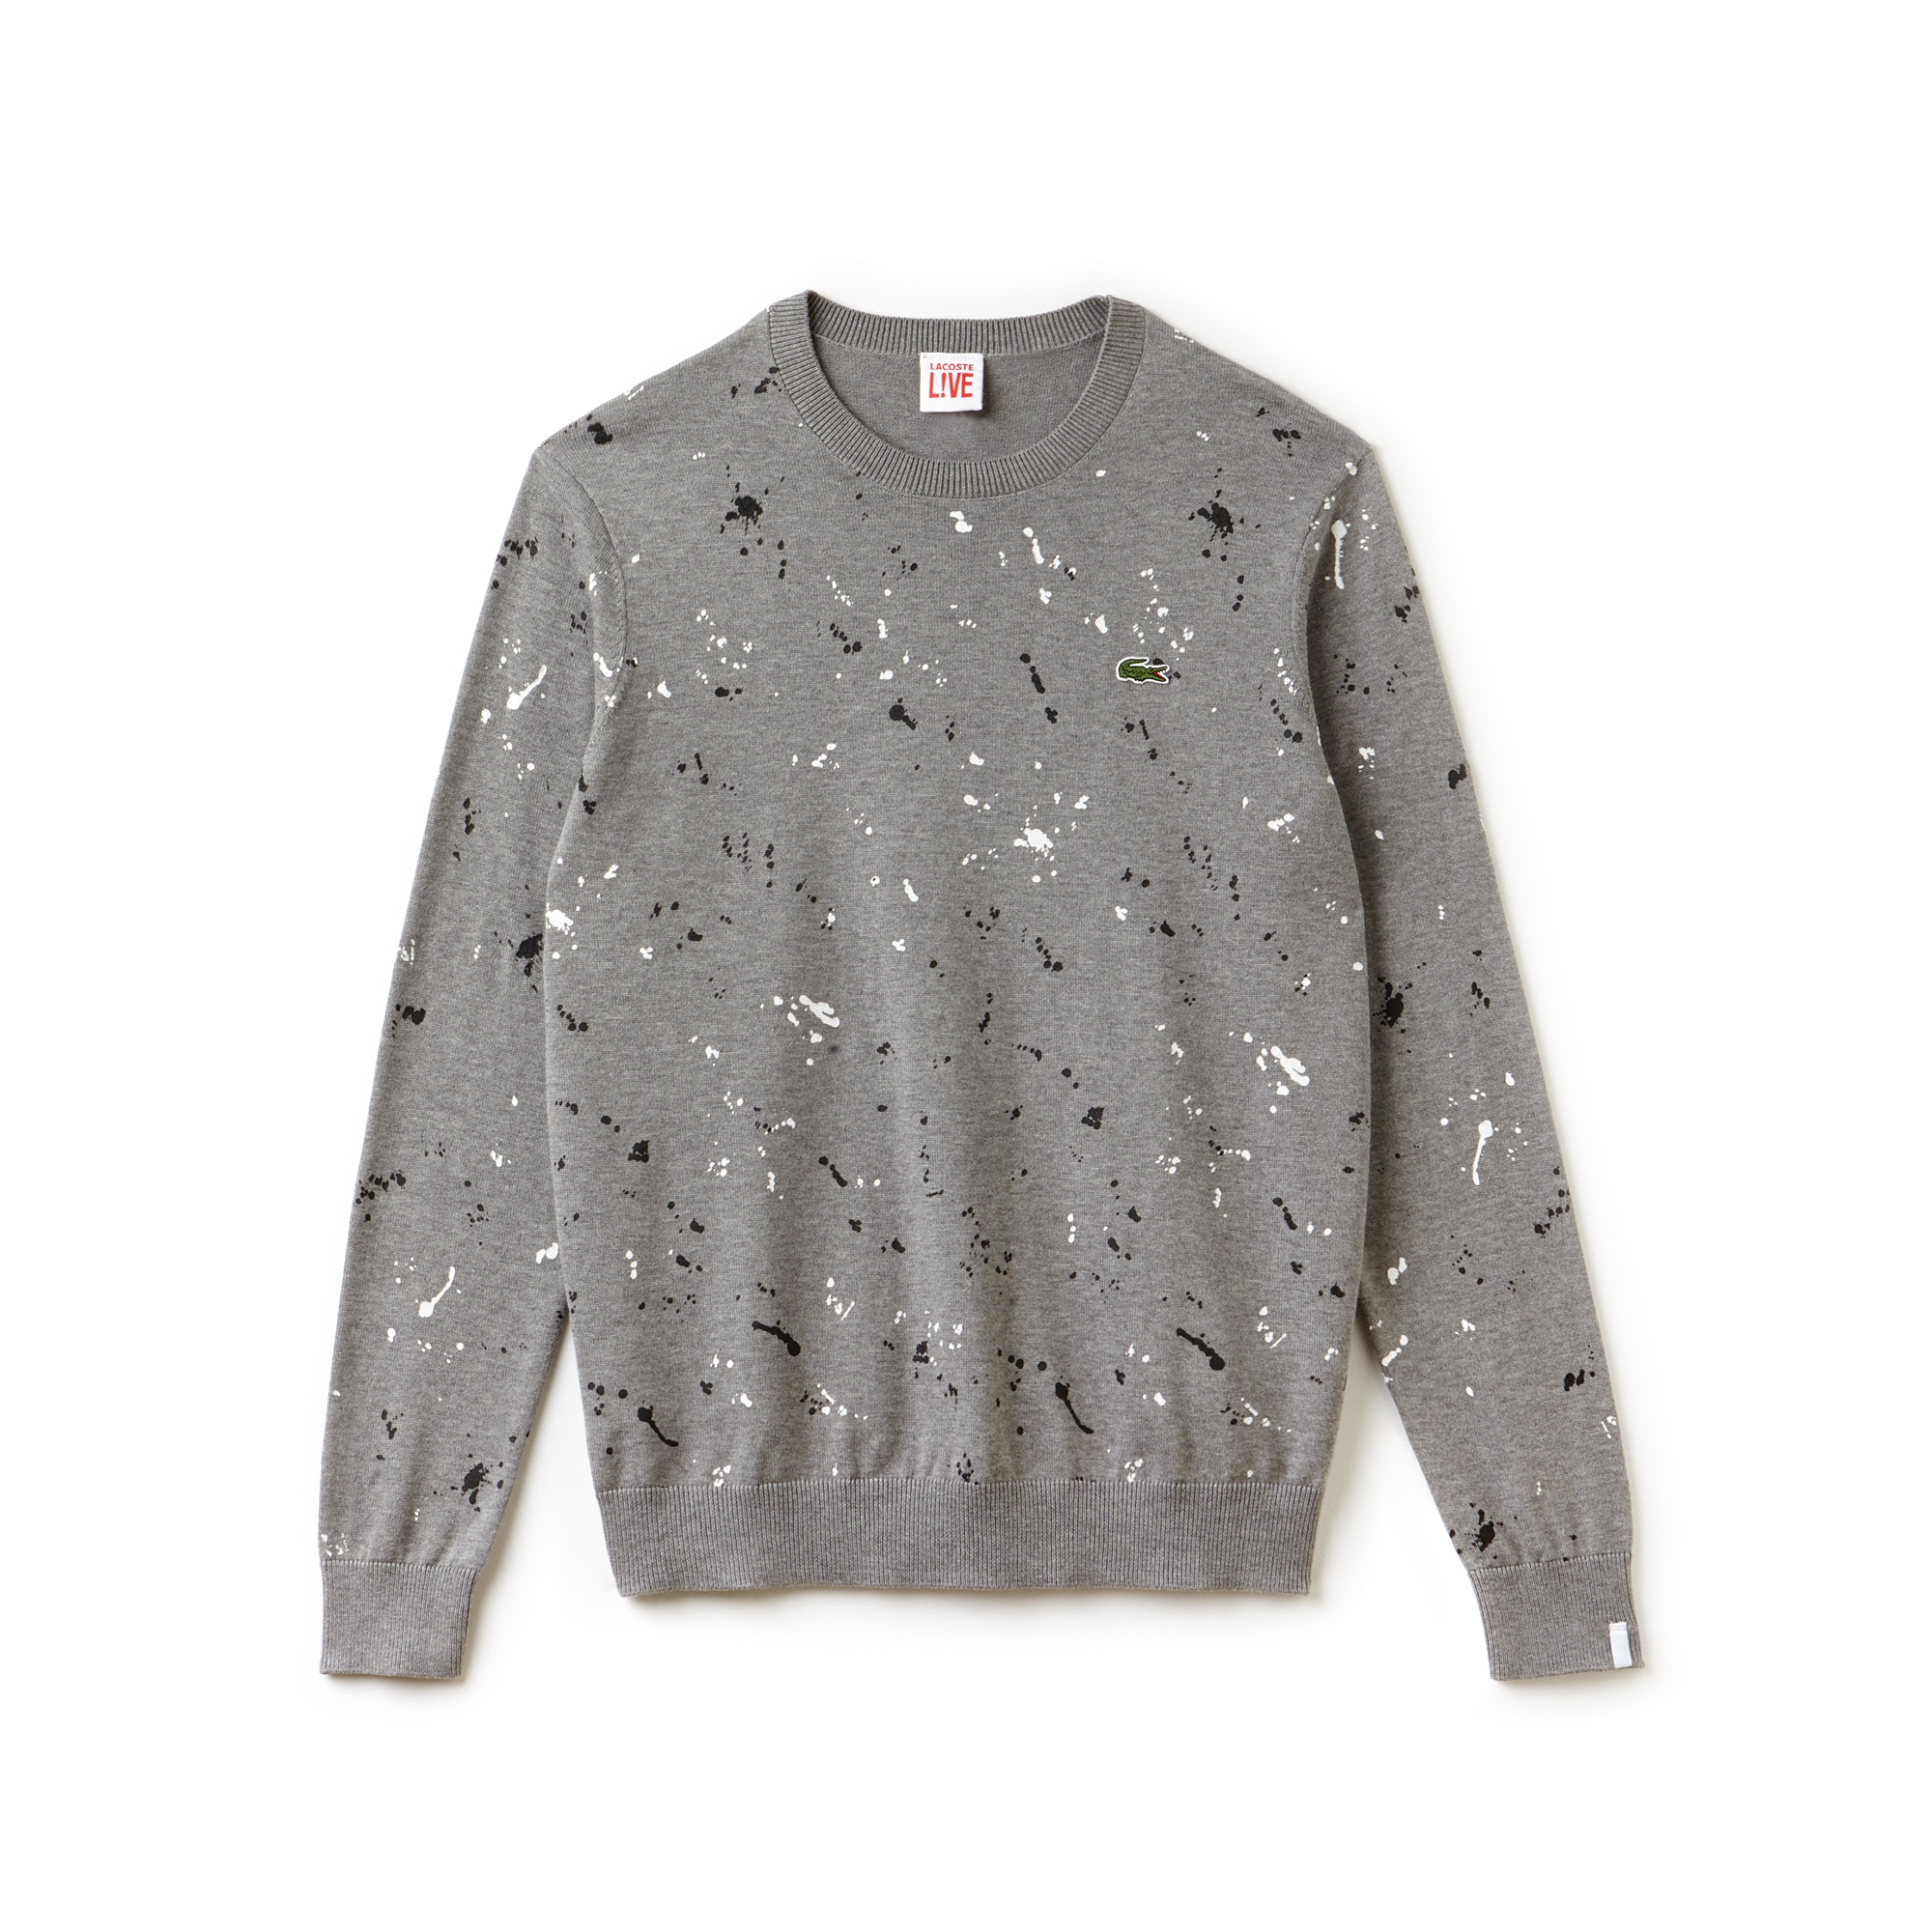 Men's  LIVE Crew Neck Speckled Print Jersey Sweater